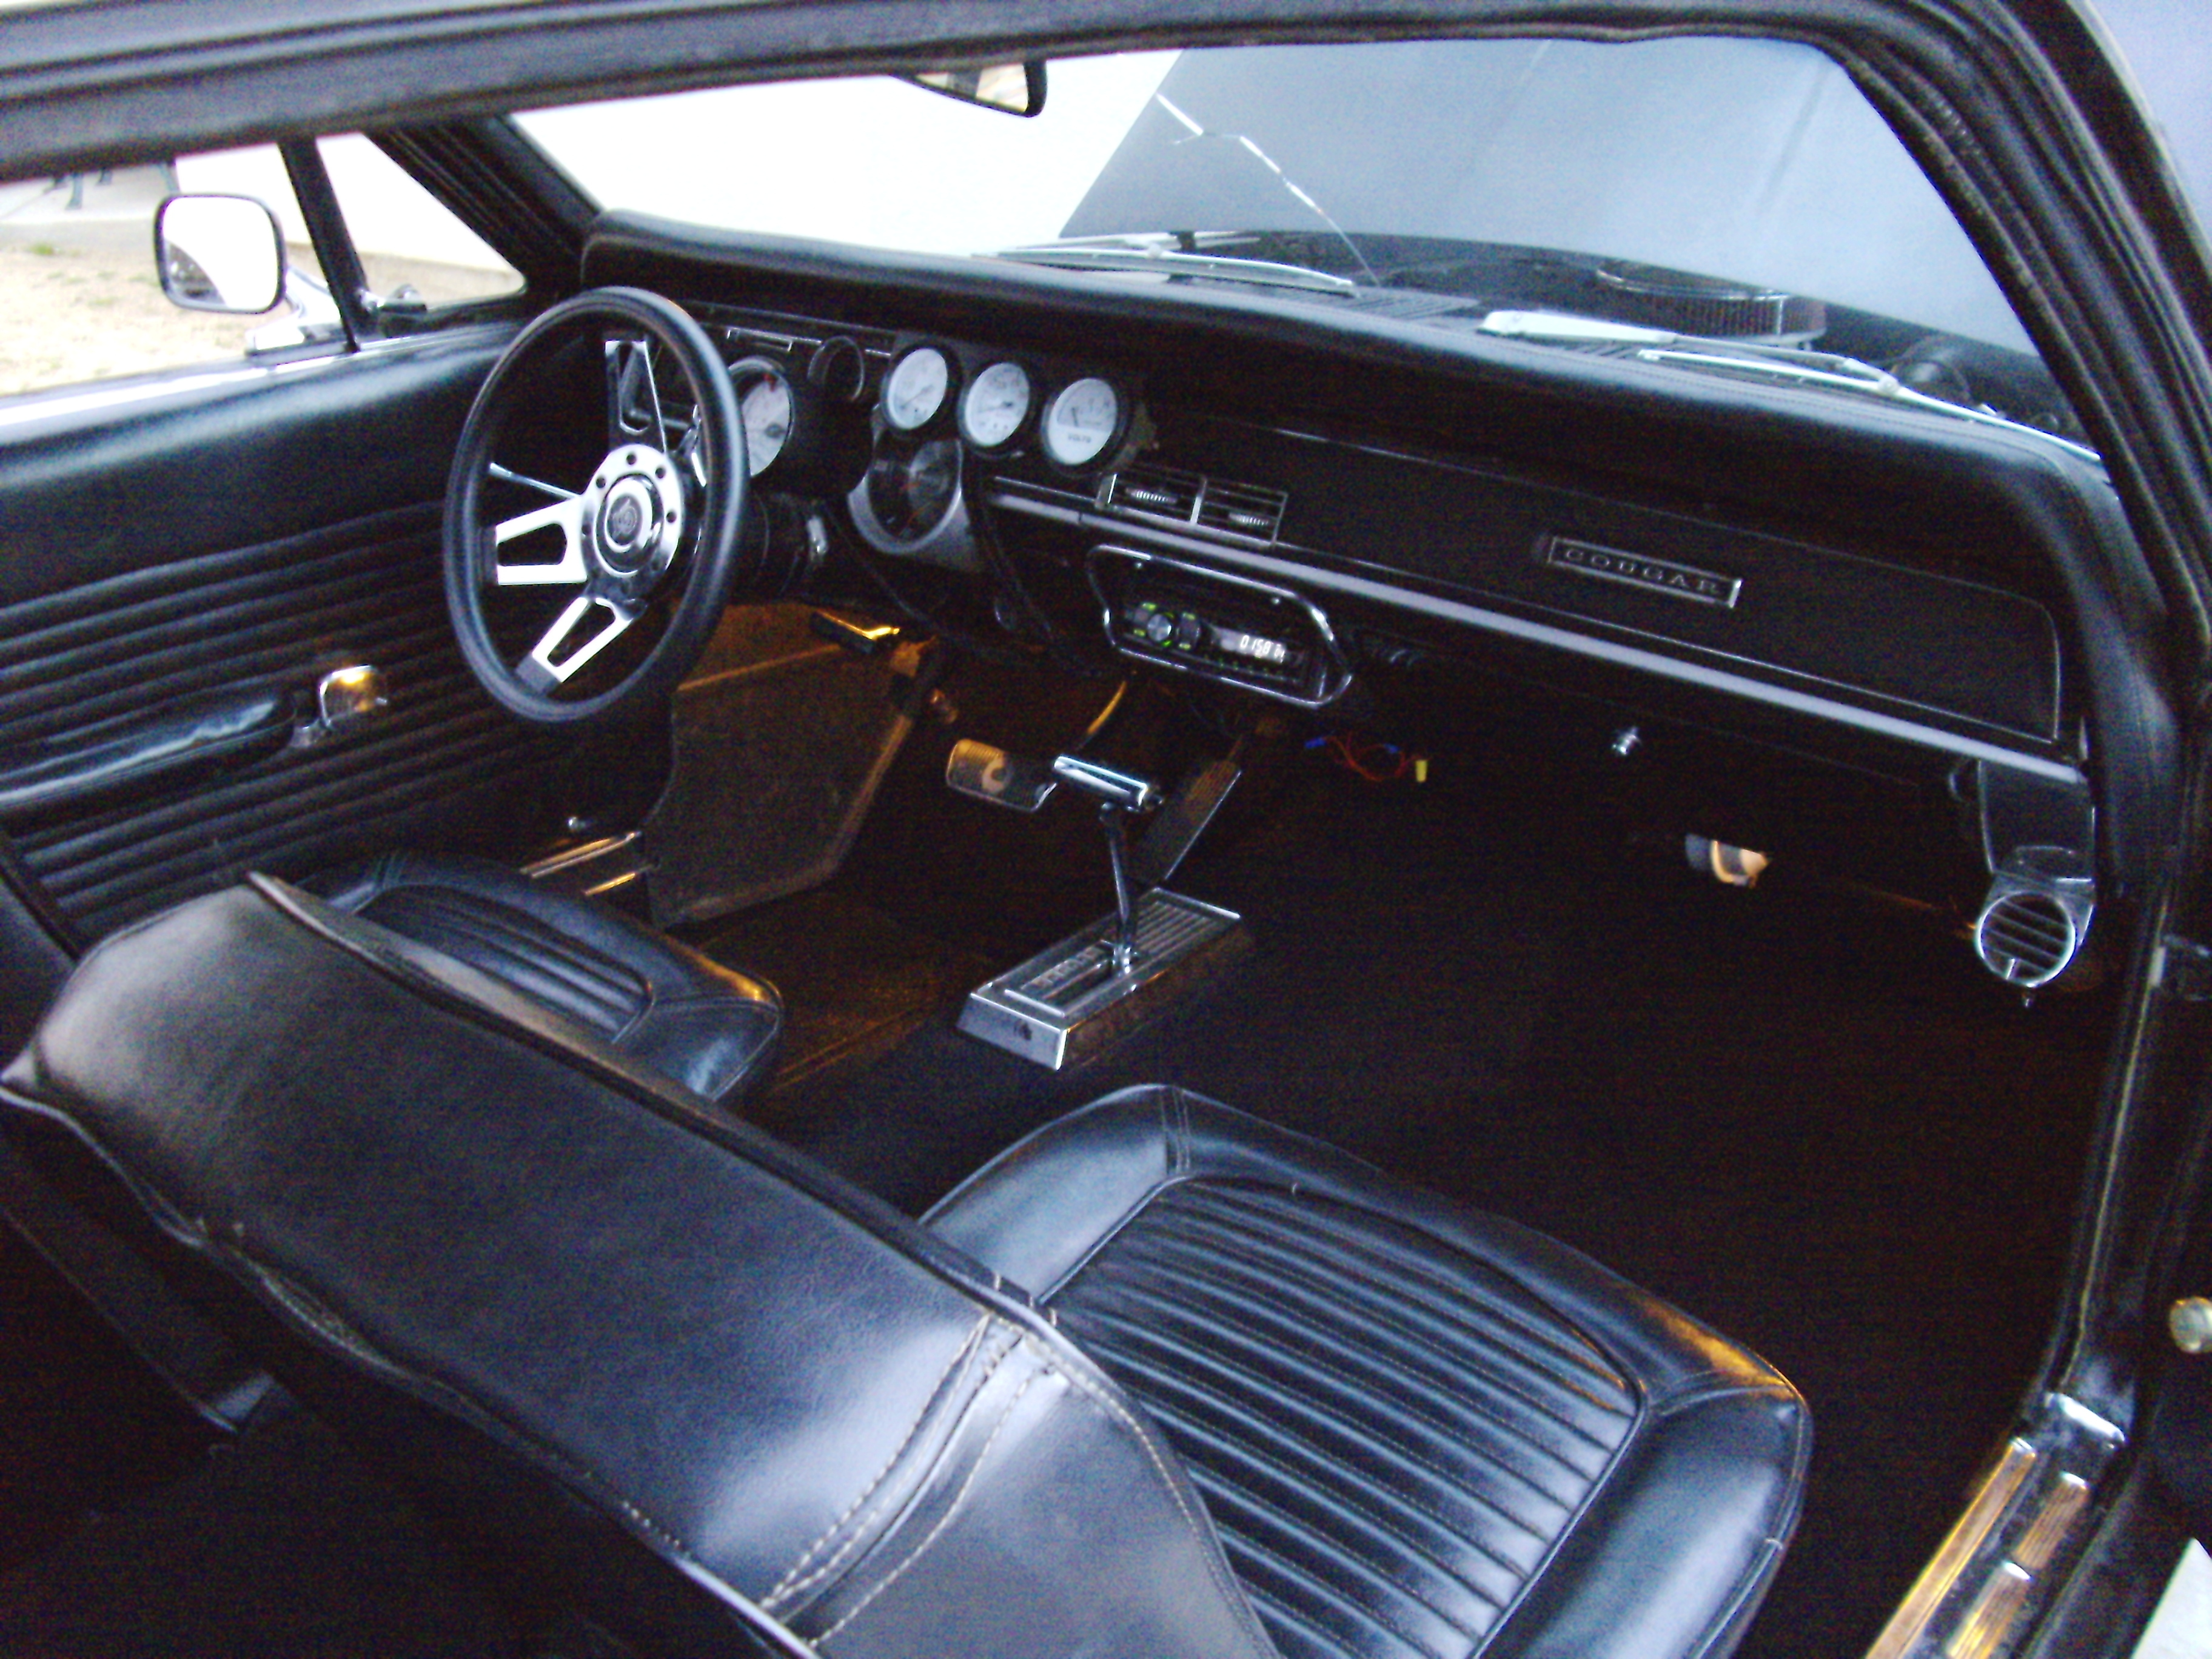 Another Muscle_Vs_Import 1968 Mercury Cougar post... - 11836839